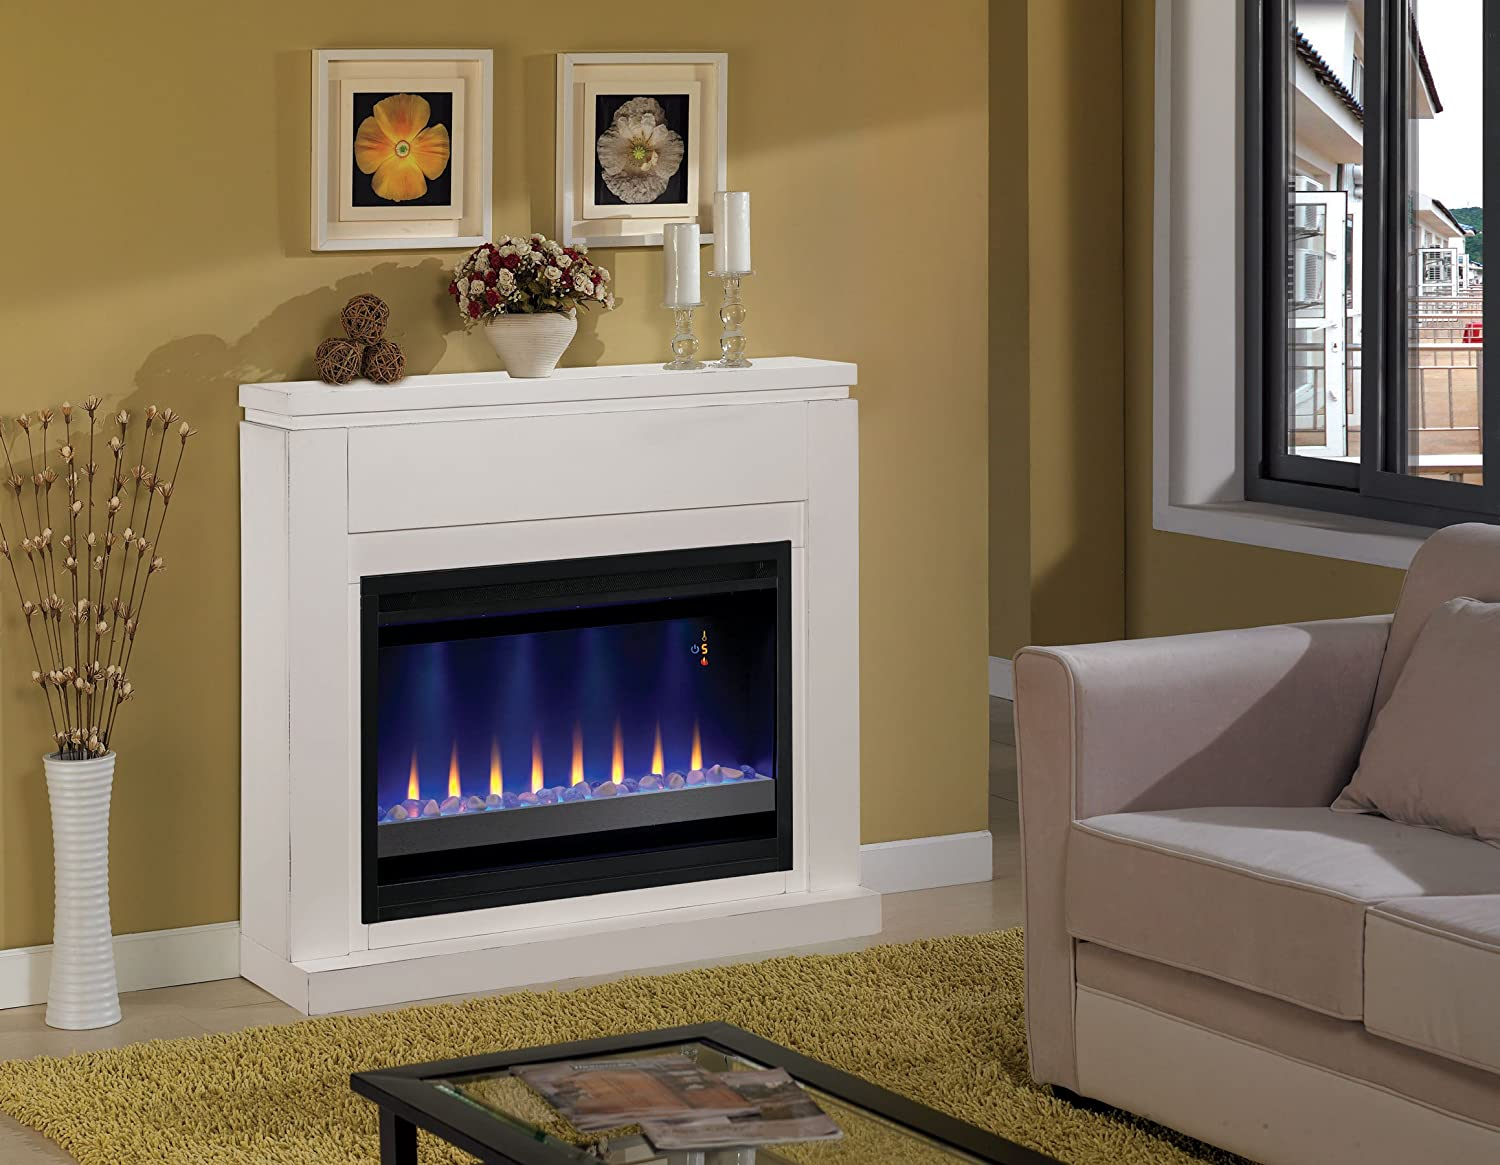 ClassicFlame 36WM1512-T401 Contemporary Wall Fireplace Mantel - White (Electric Fireplace Insert sold separately